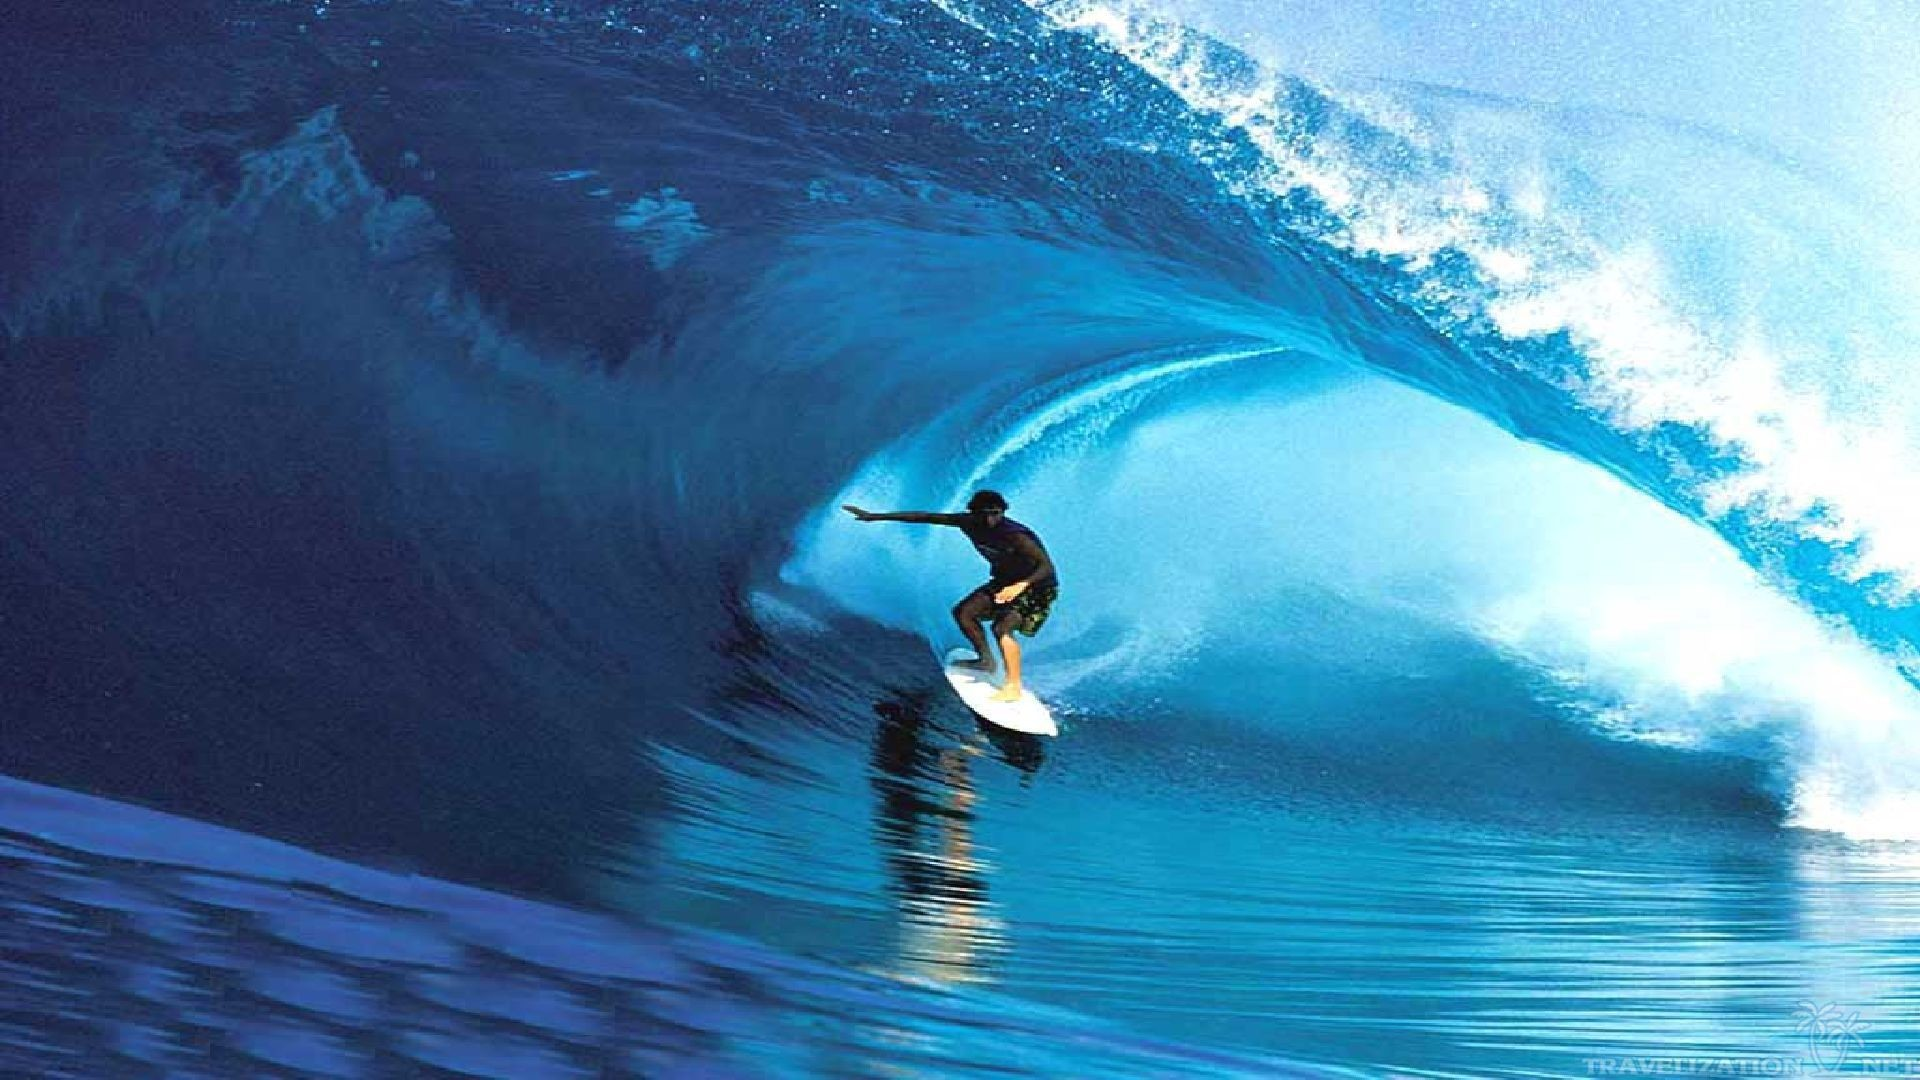 1920x1080 Cool Hd Surf Wallpaper Wallpapersafari